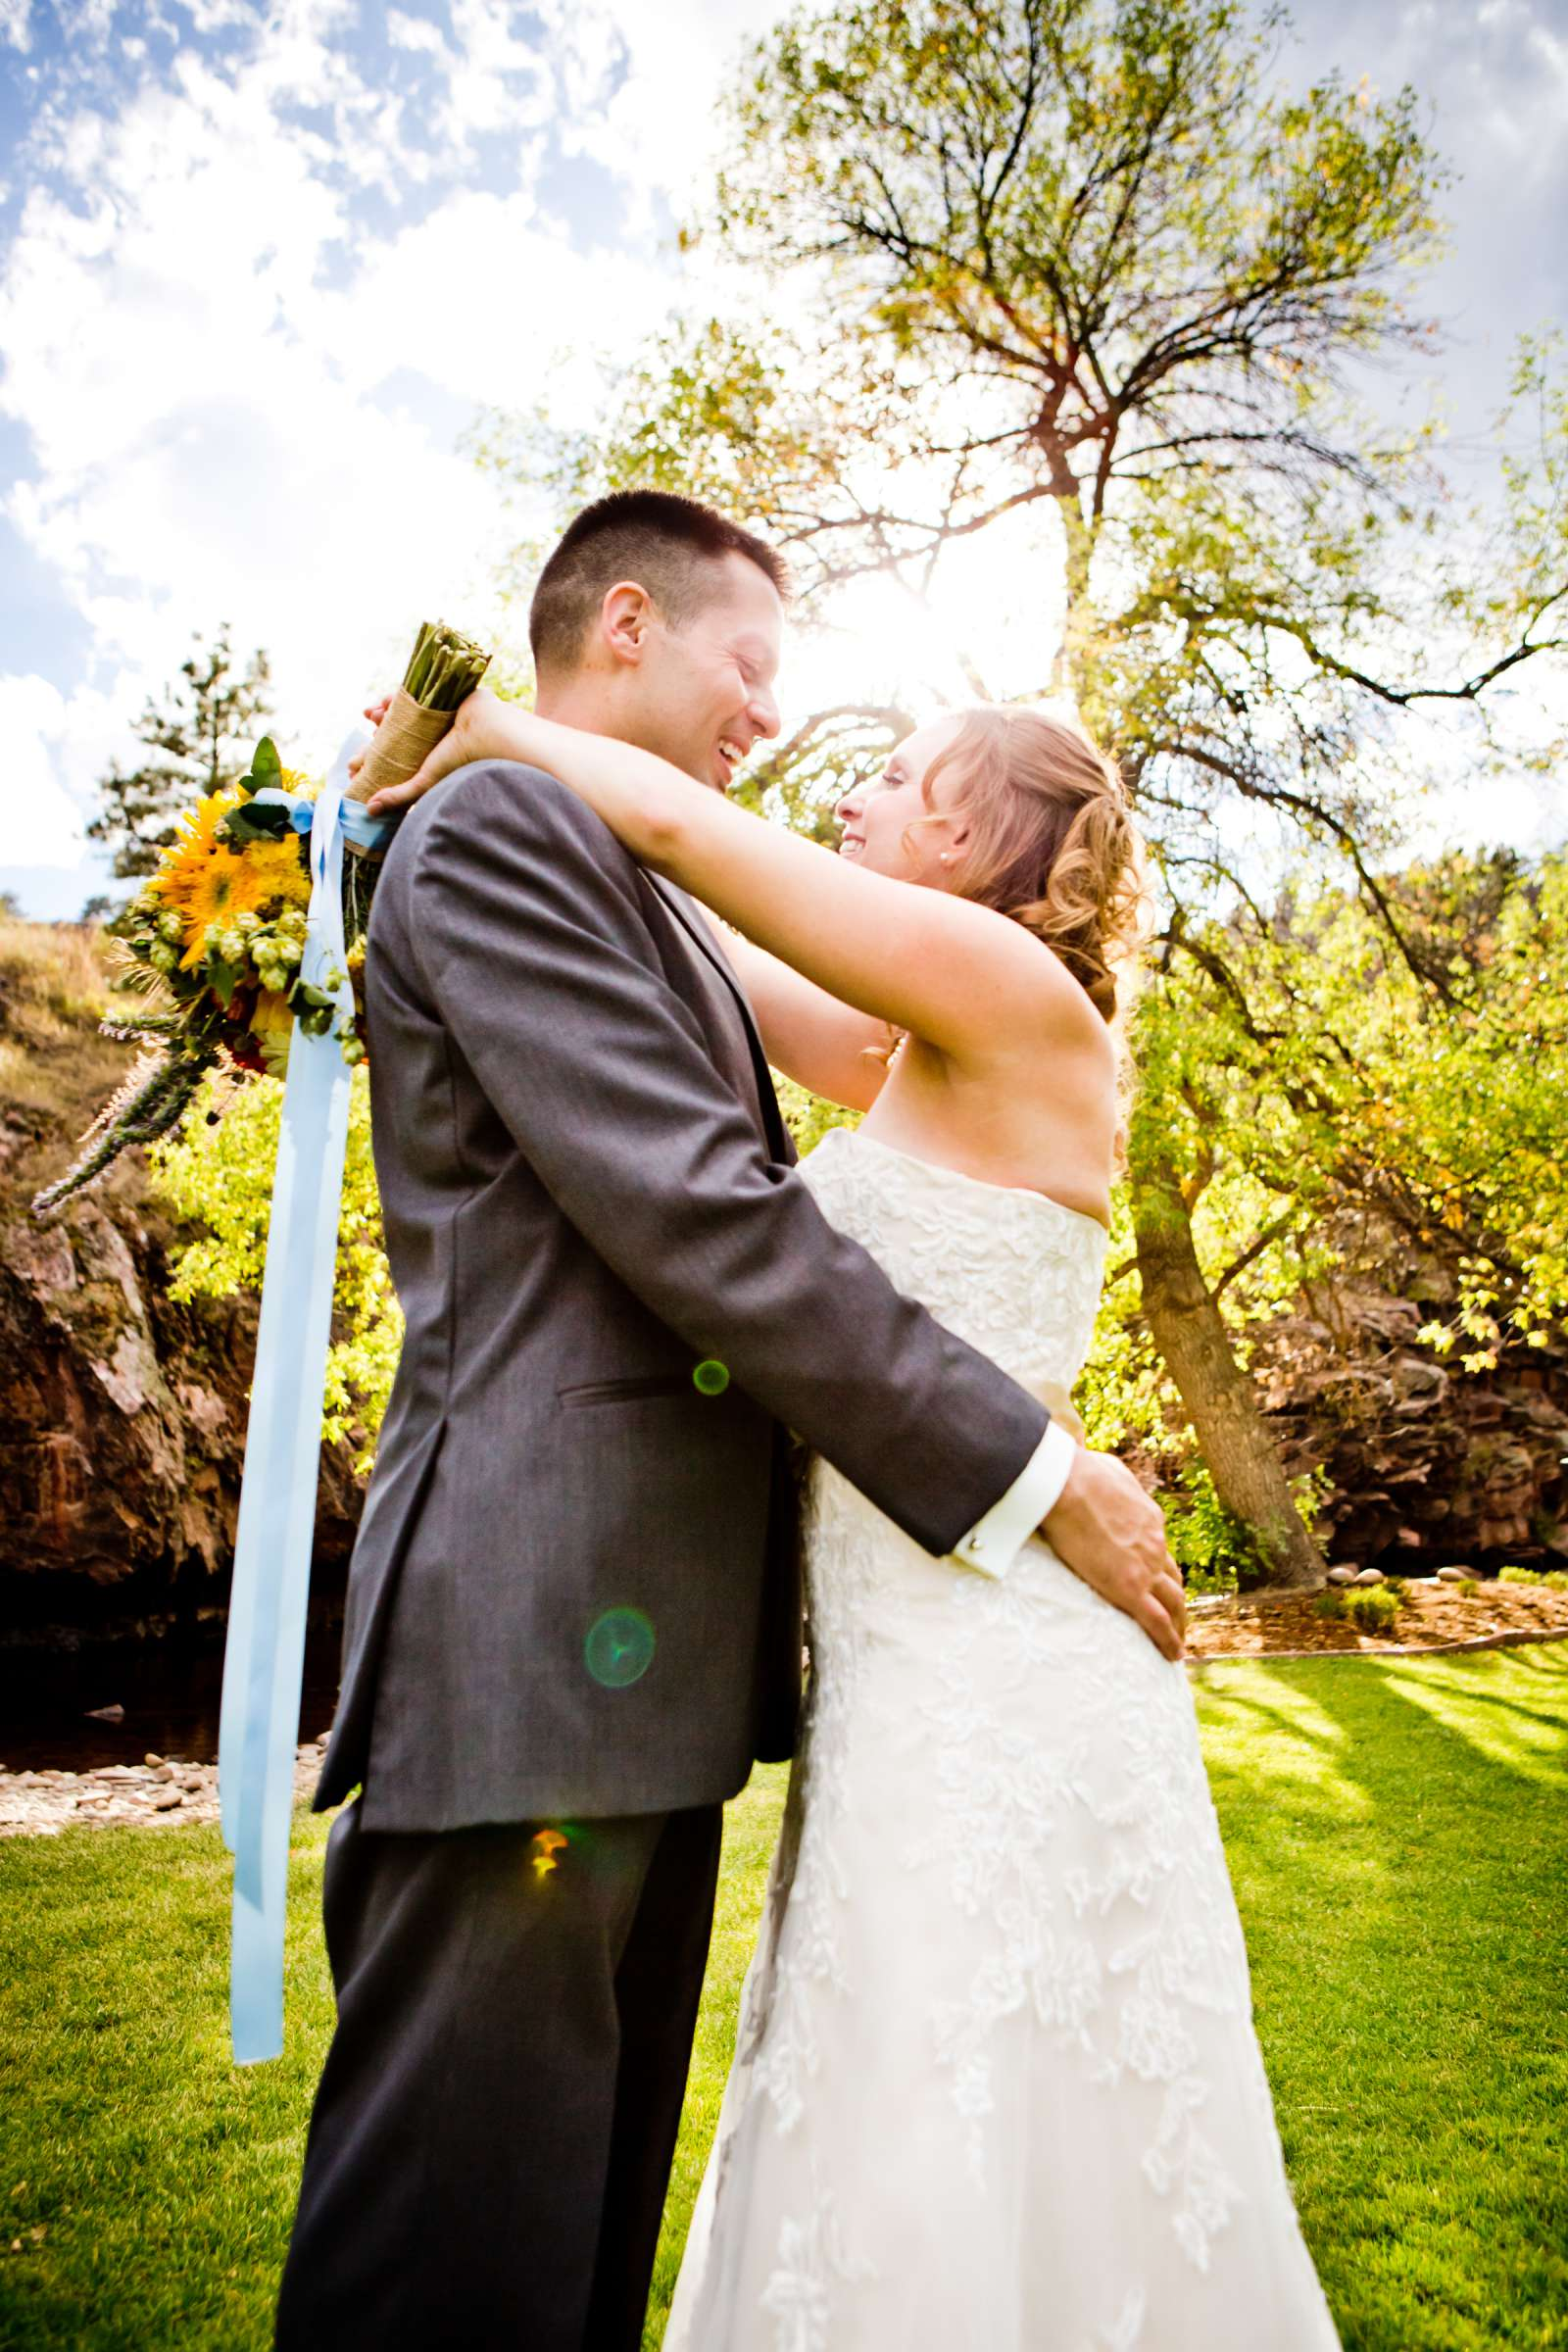 The Lyons Farmette Wedding, Tiffany and J. Travis Wedding Photo #6 by True Photography